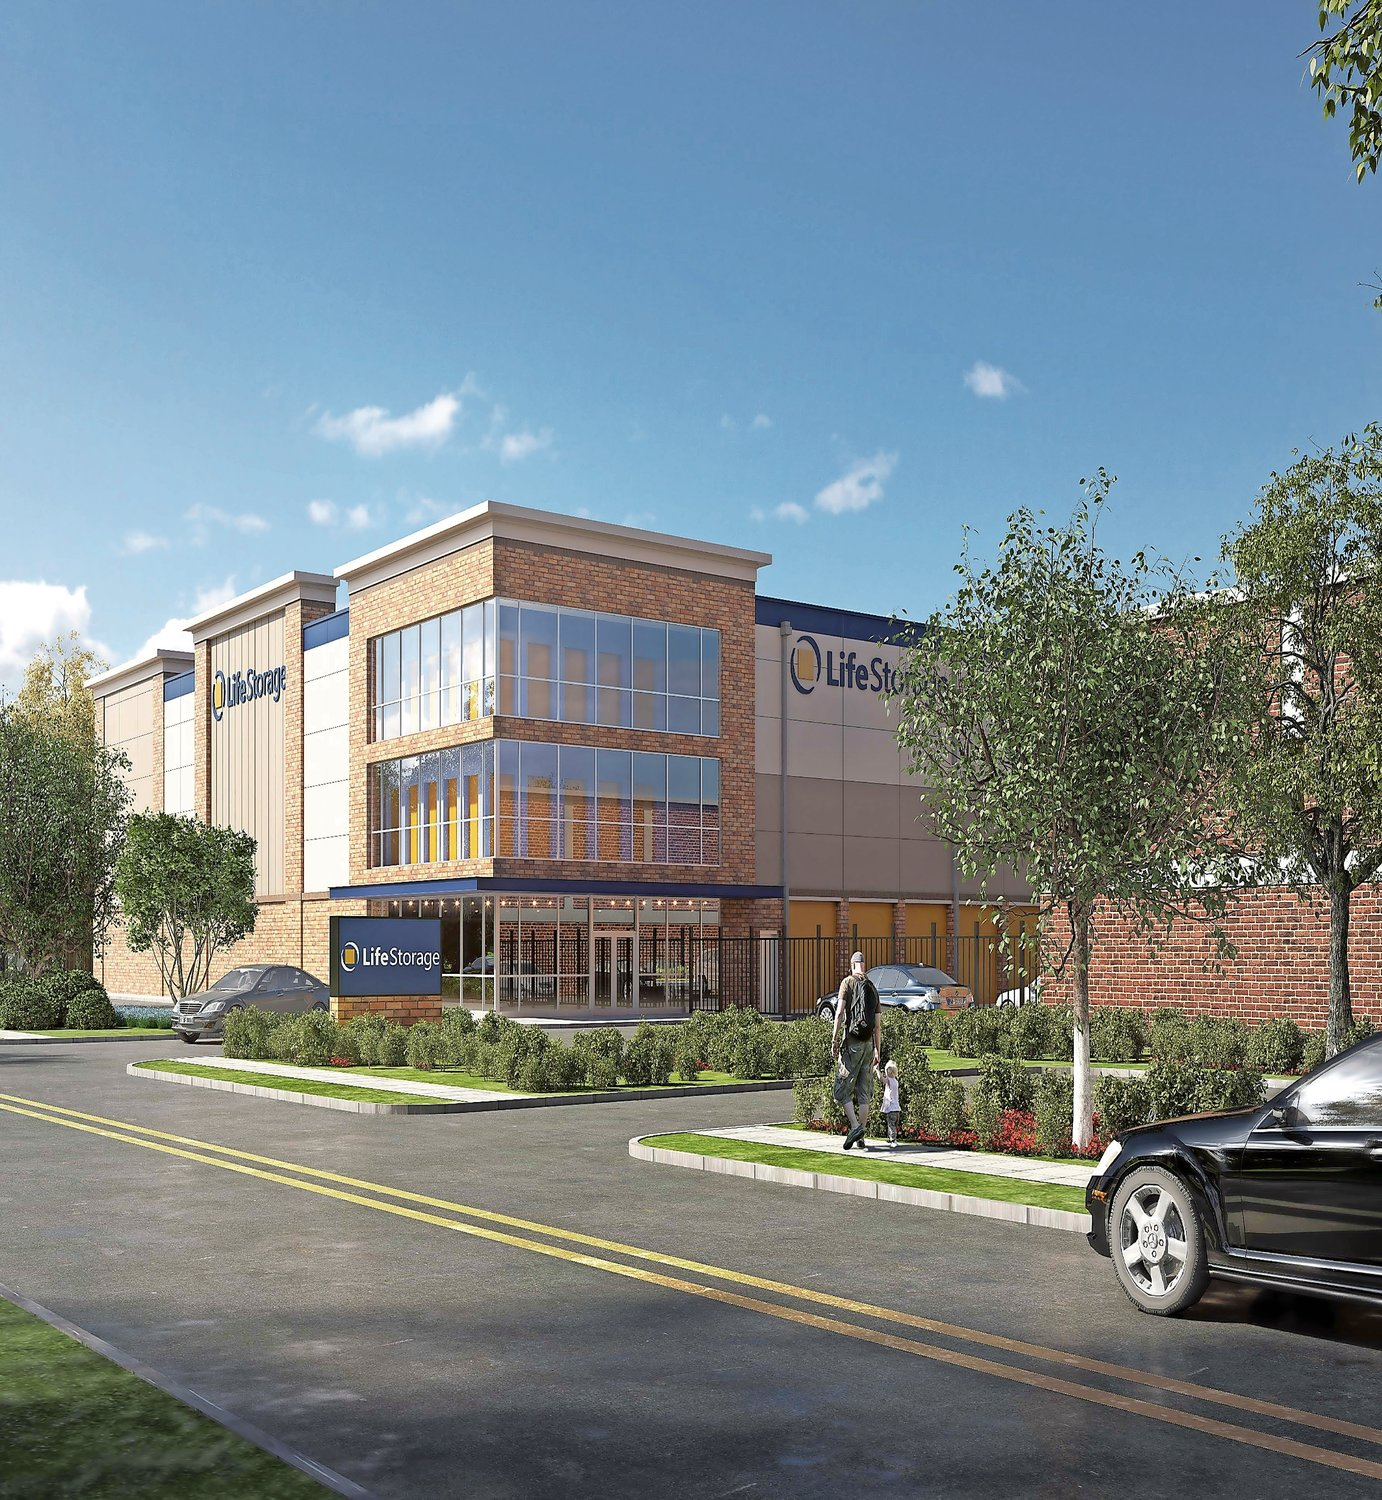 A rendering of the Life Storage facility proposed to replace the Halm Industries building.